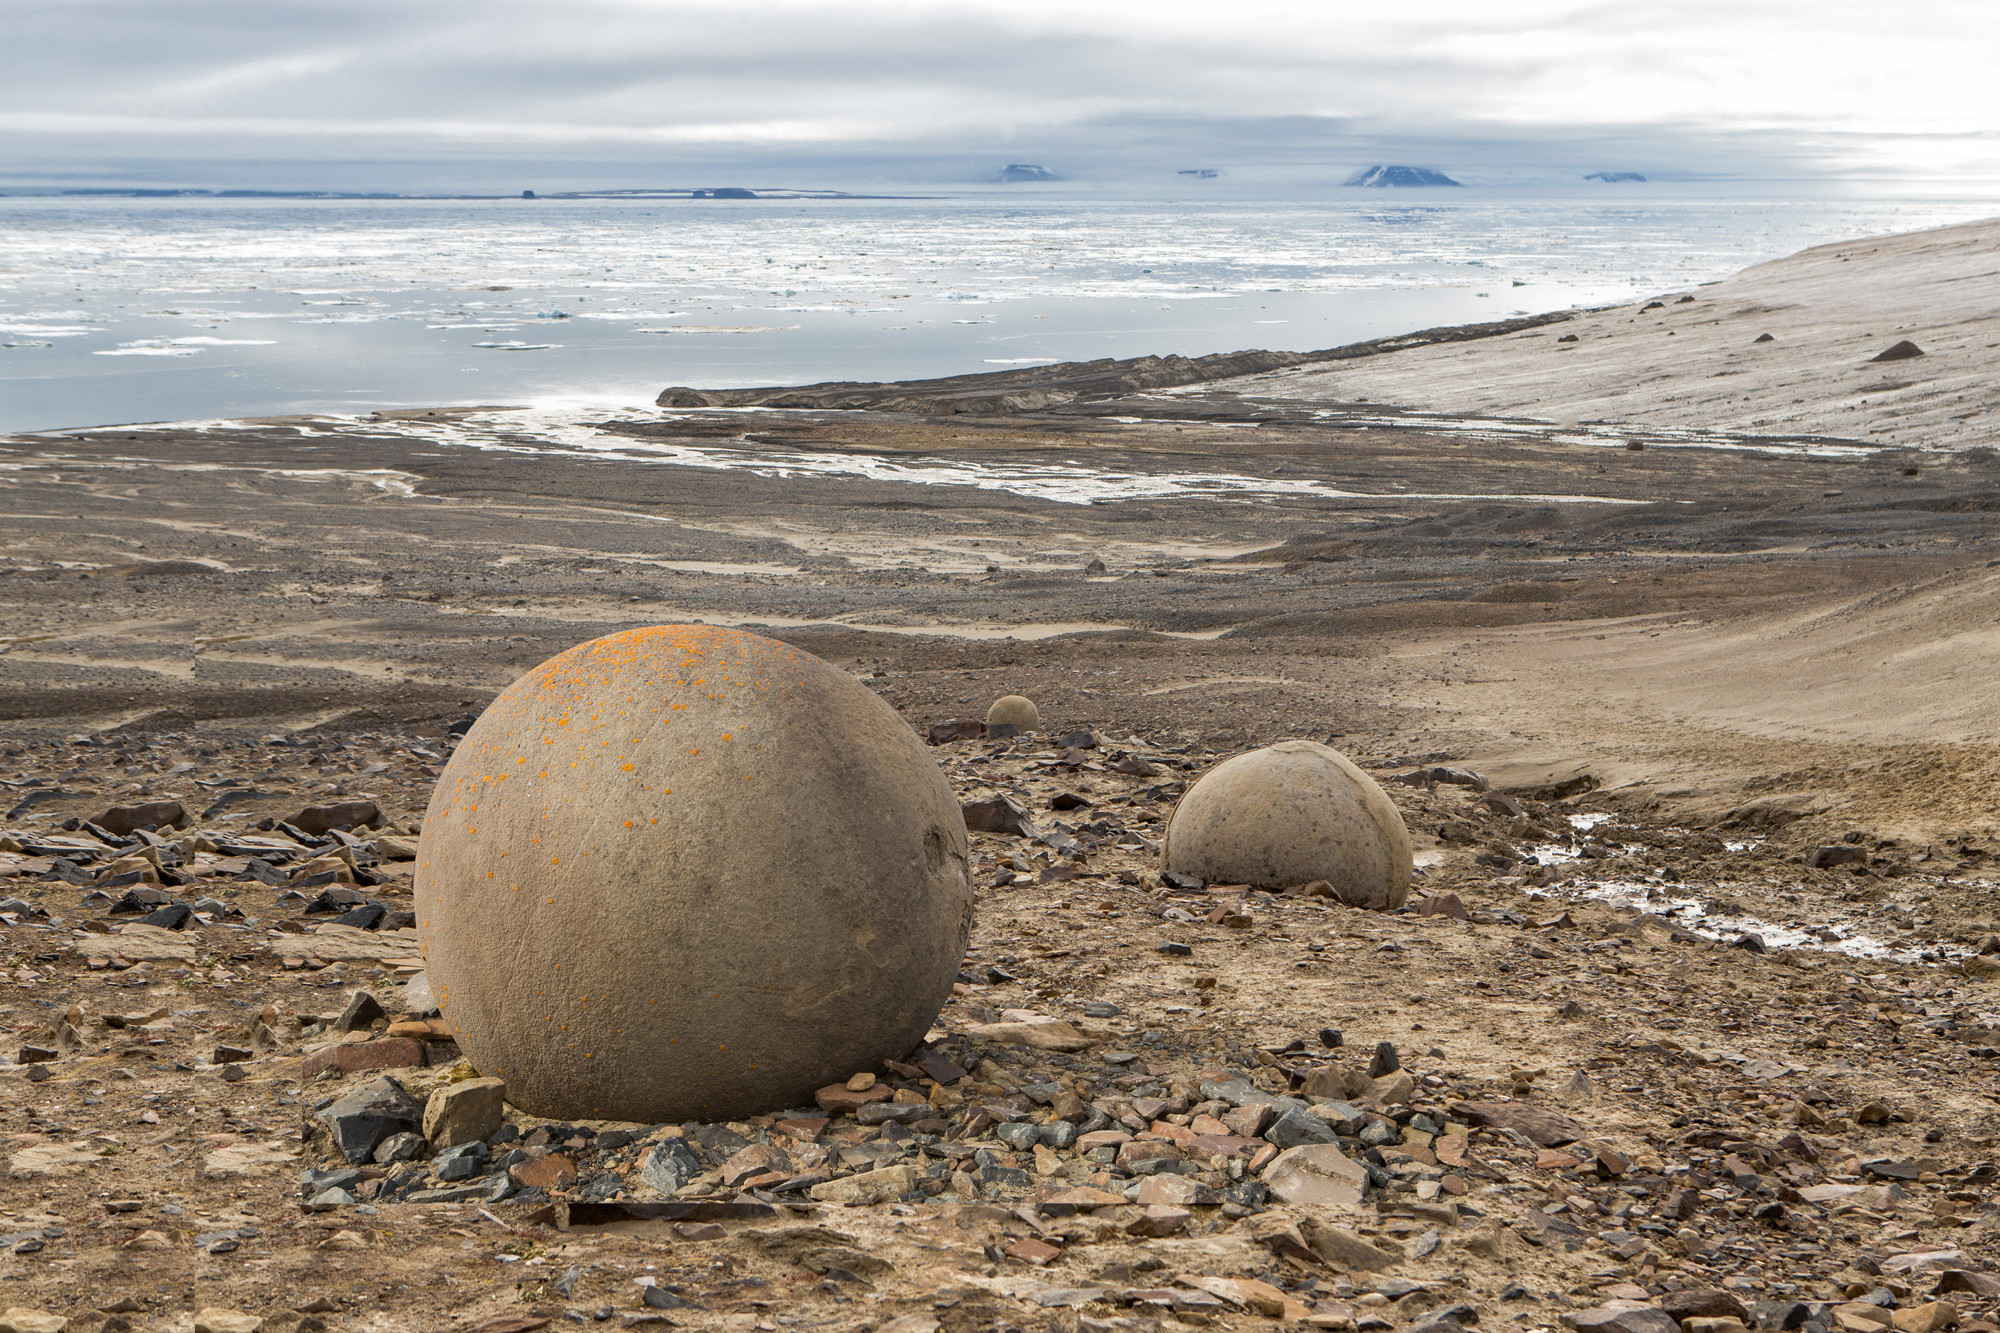 Champ Island Spheres on the Franz Josef Land archipelago. Credit: Lauren Farmer / Poseidon Expeditio